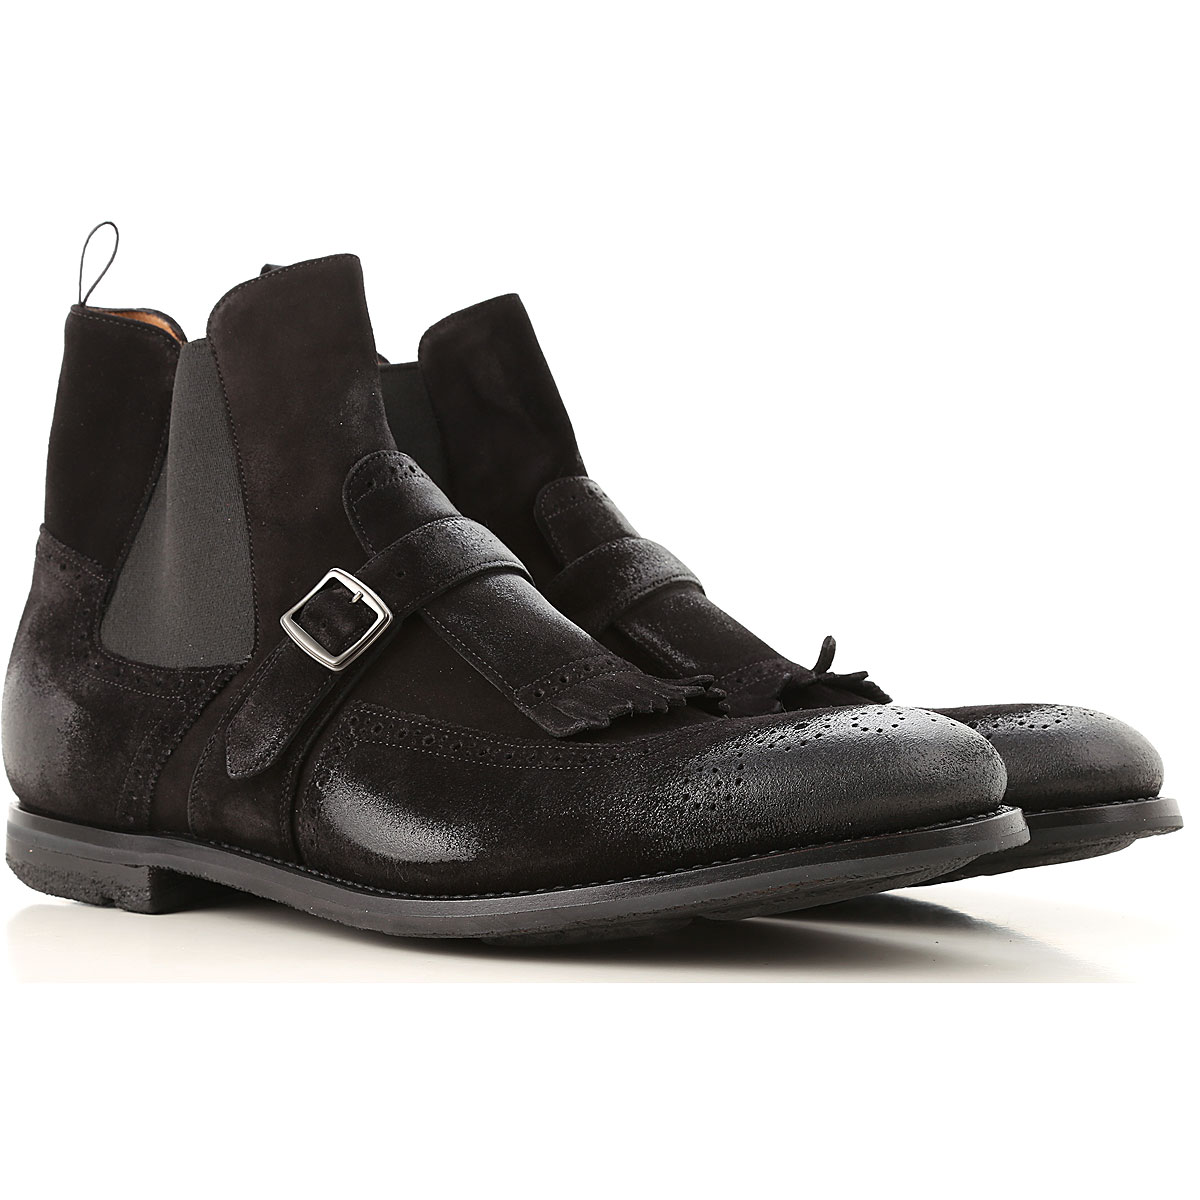 Image of Church's Boots for Men, Booties, Black, suede, 2017, 10 12 9 9.5